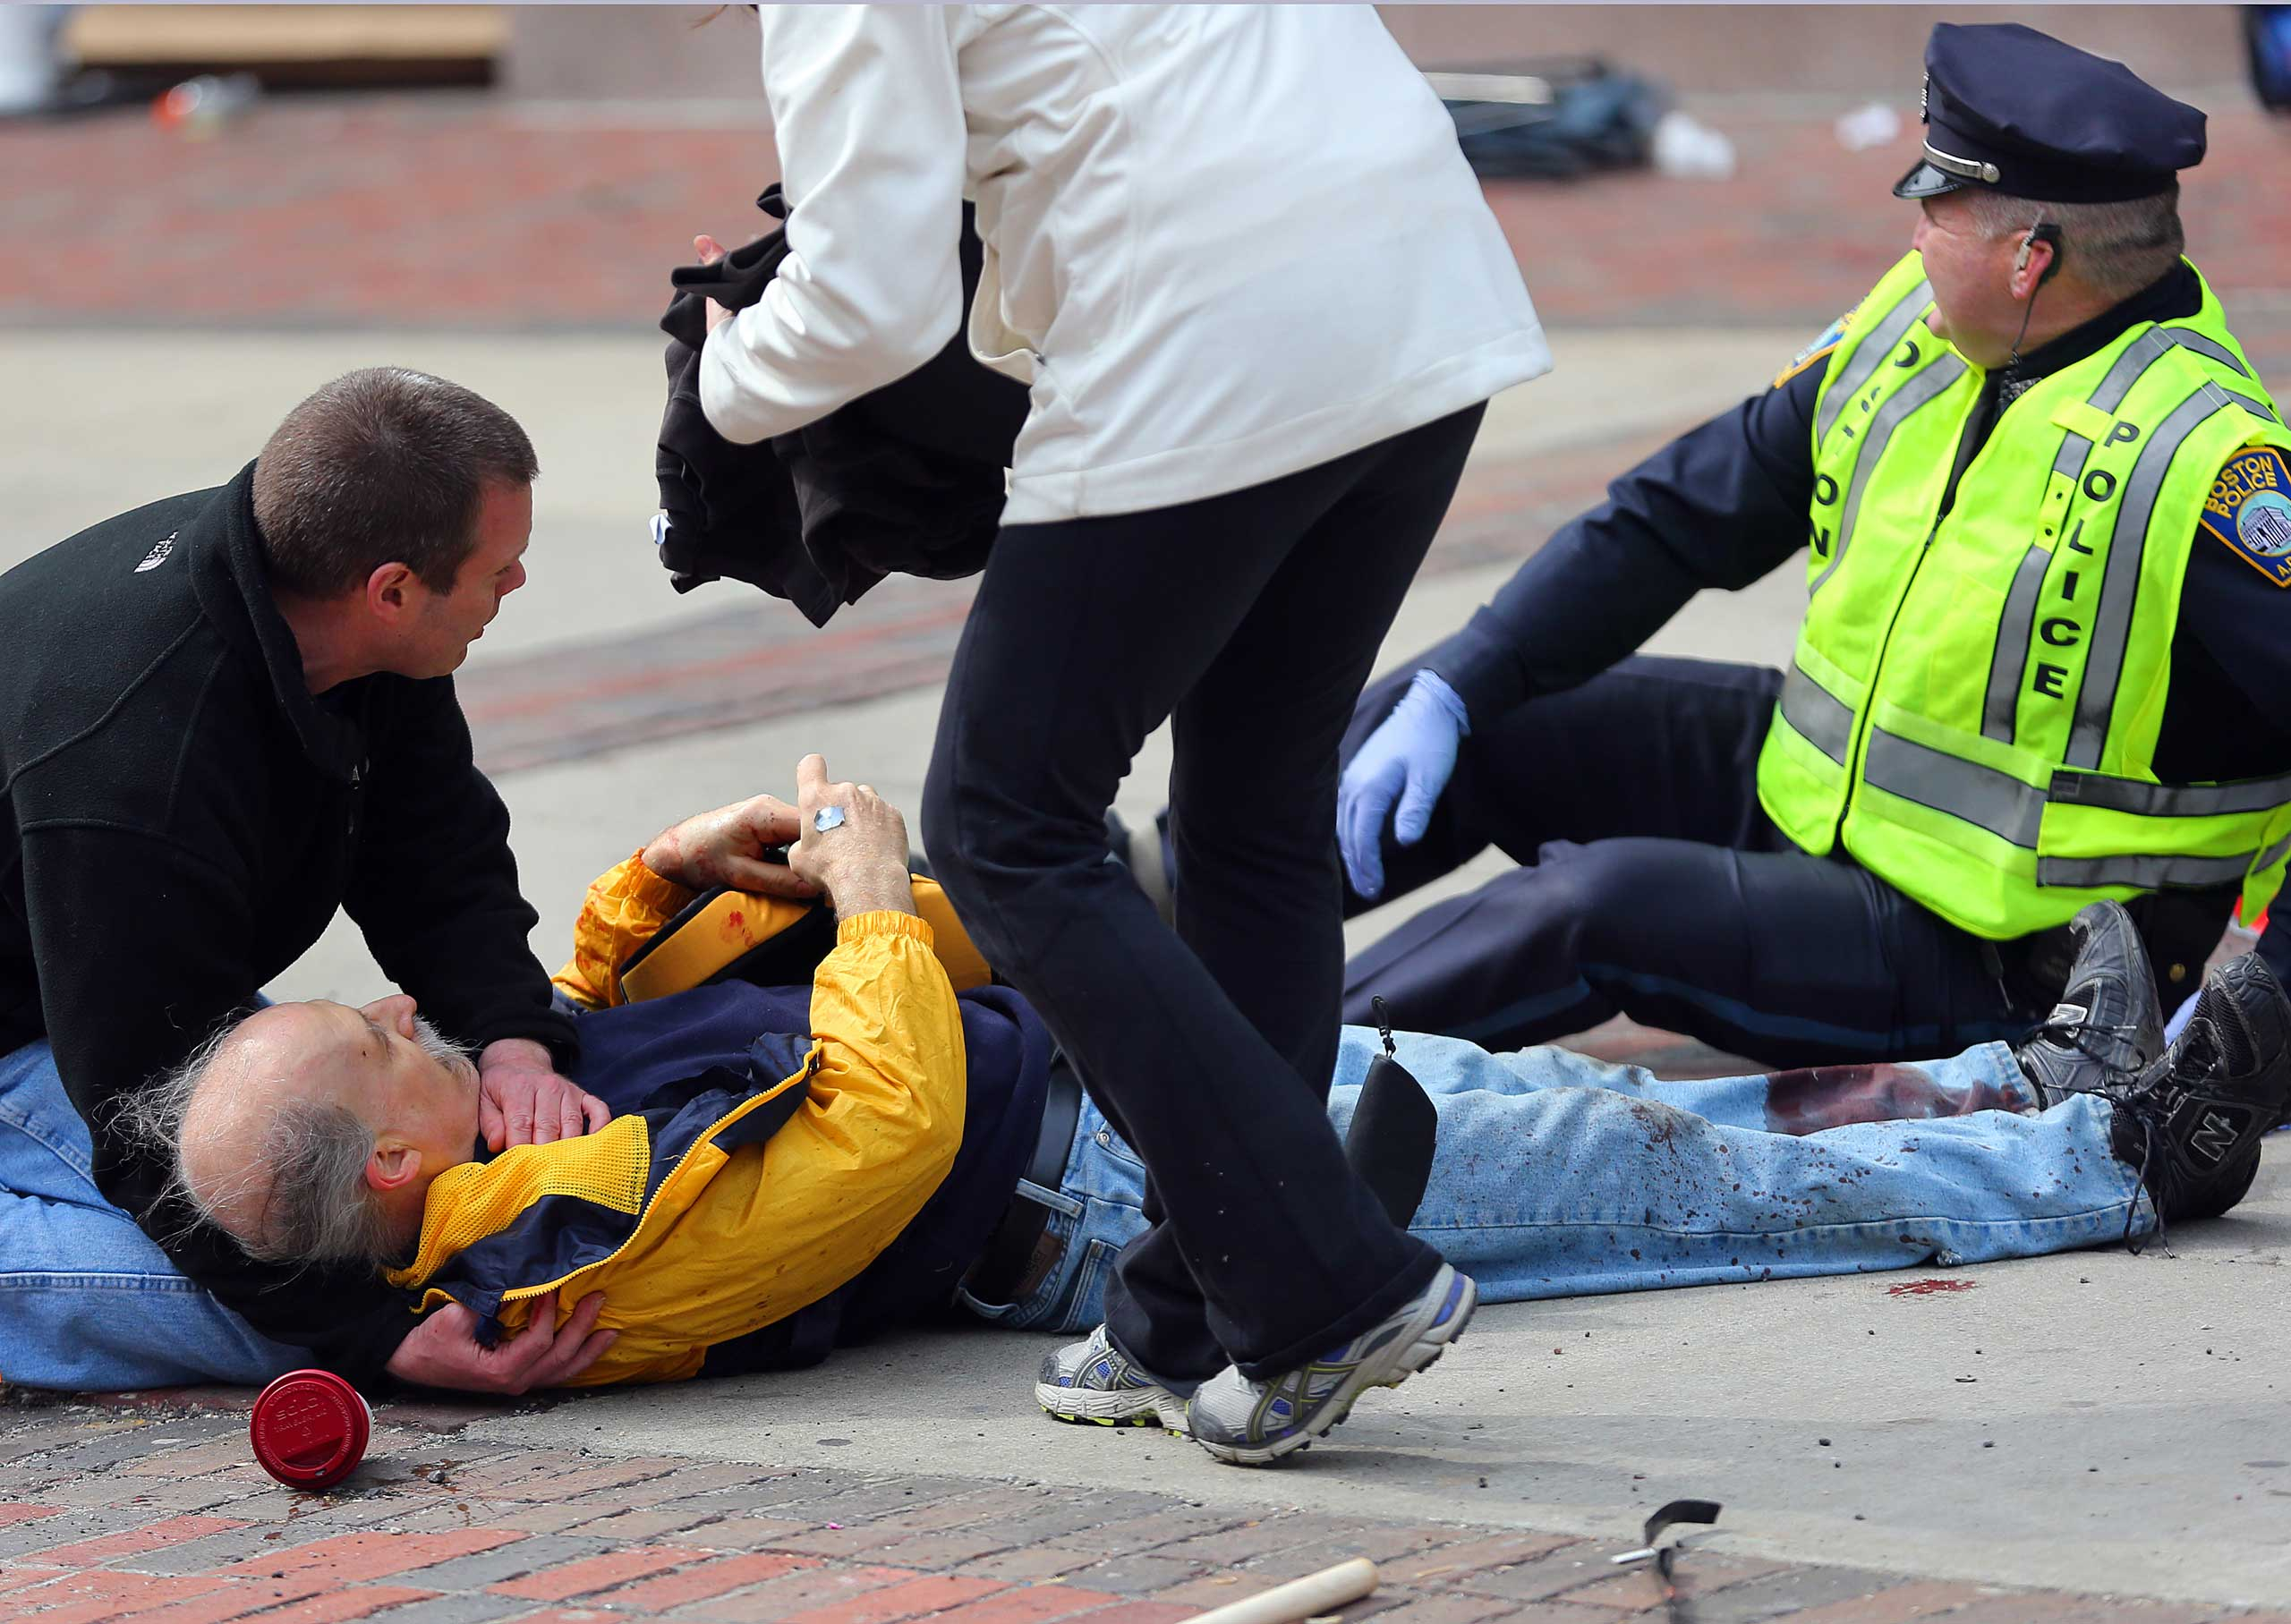 April 15, 2013. A wounded man is helped on the sidewalk at the scene of the first explosion.